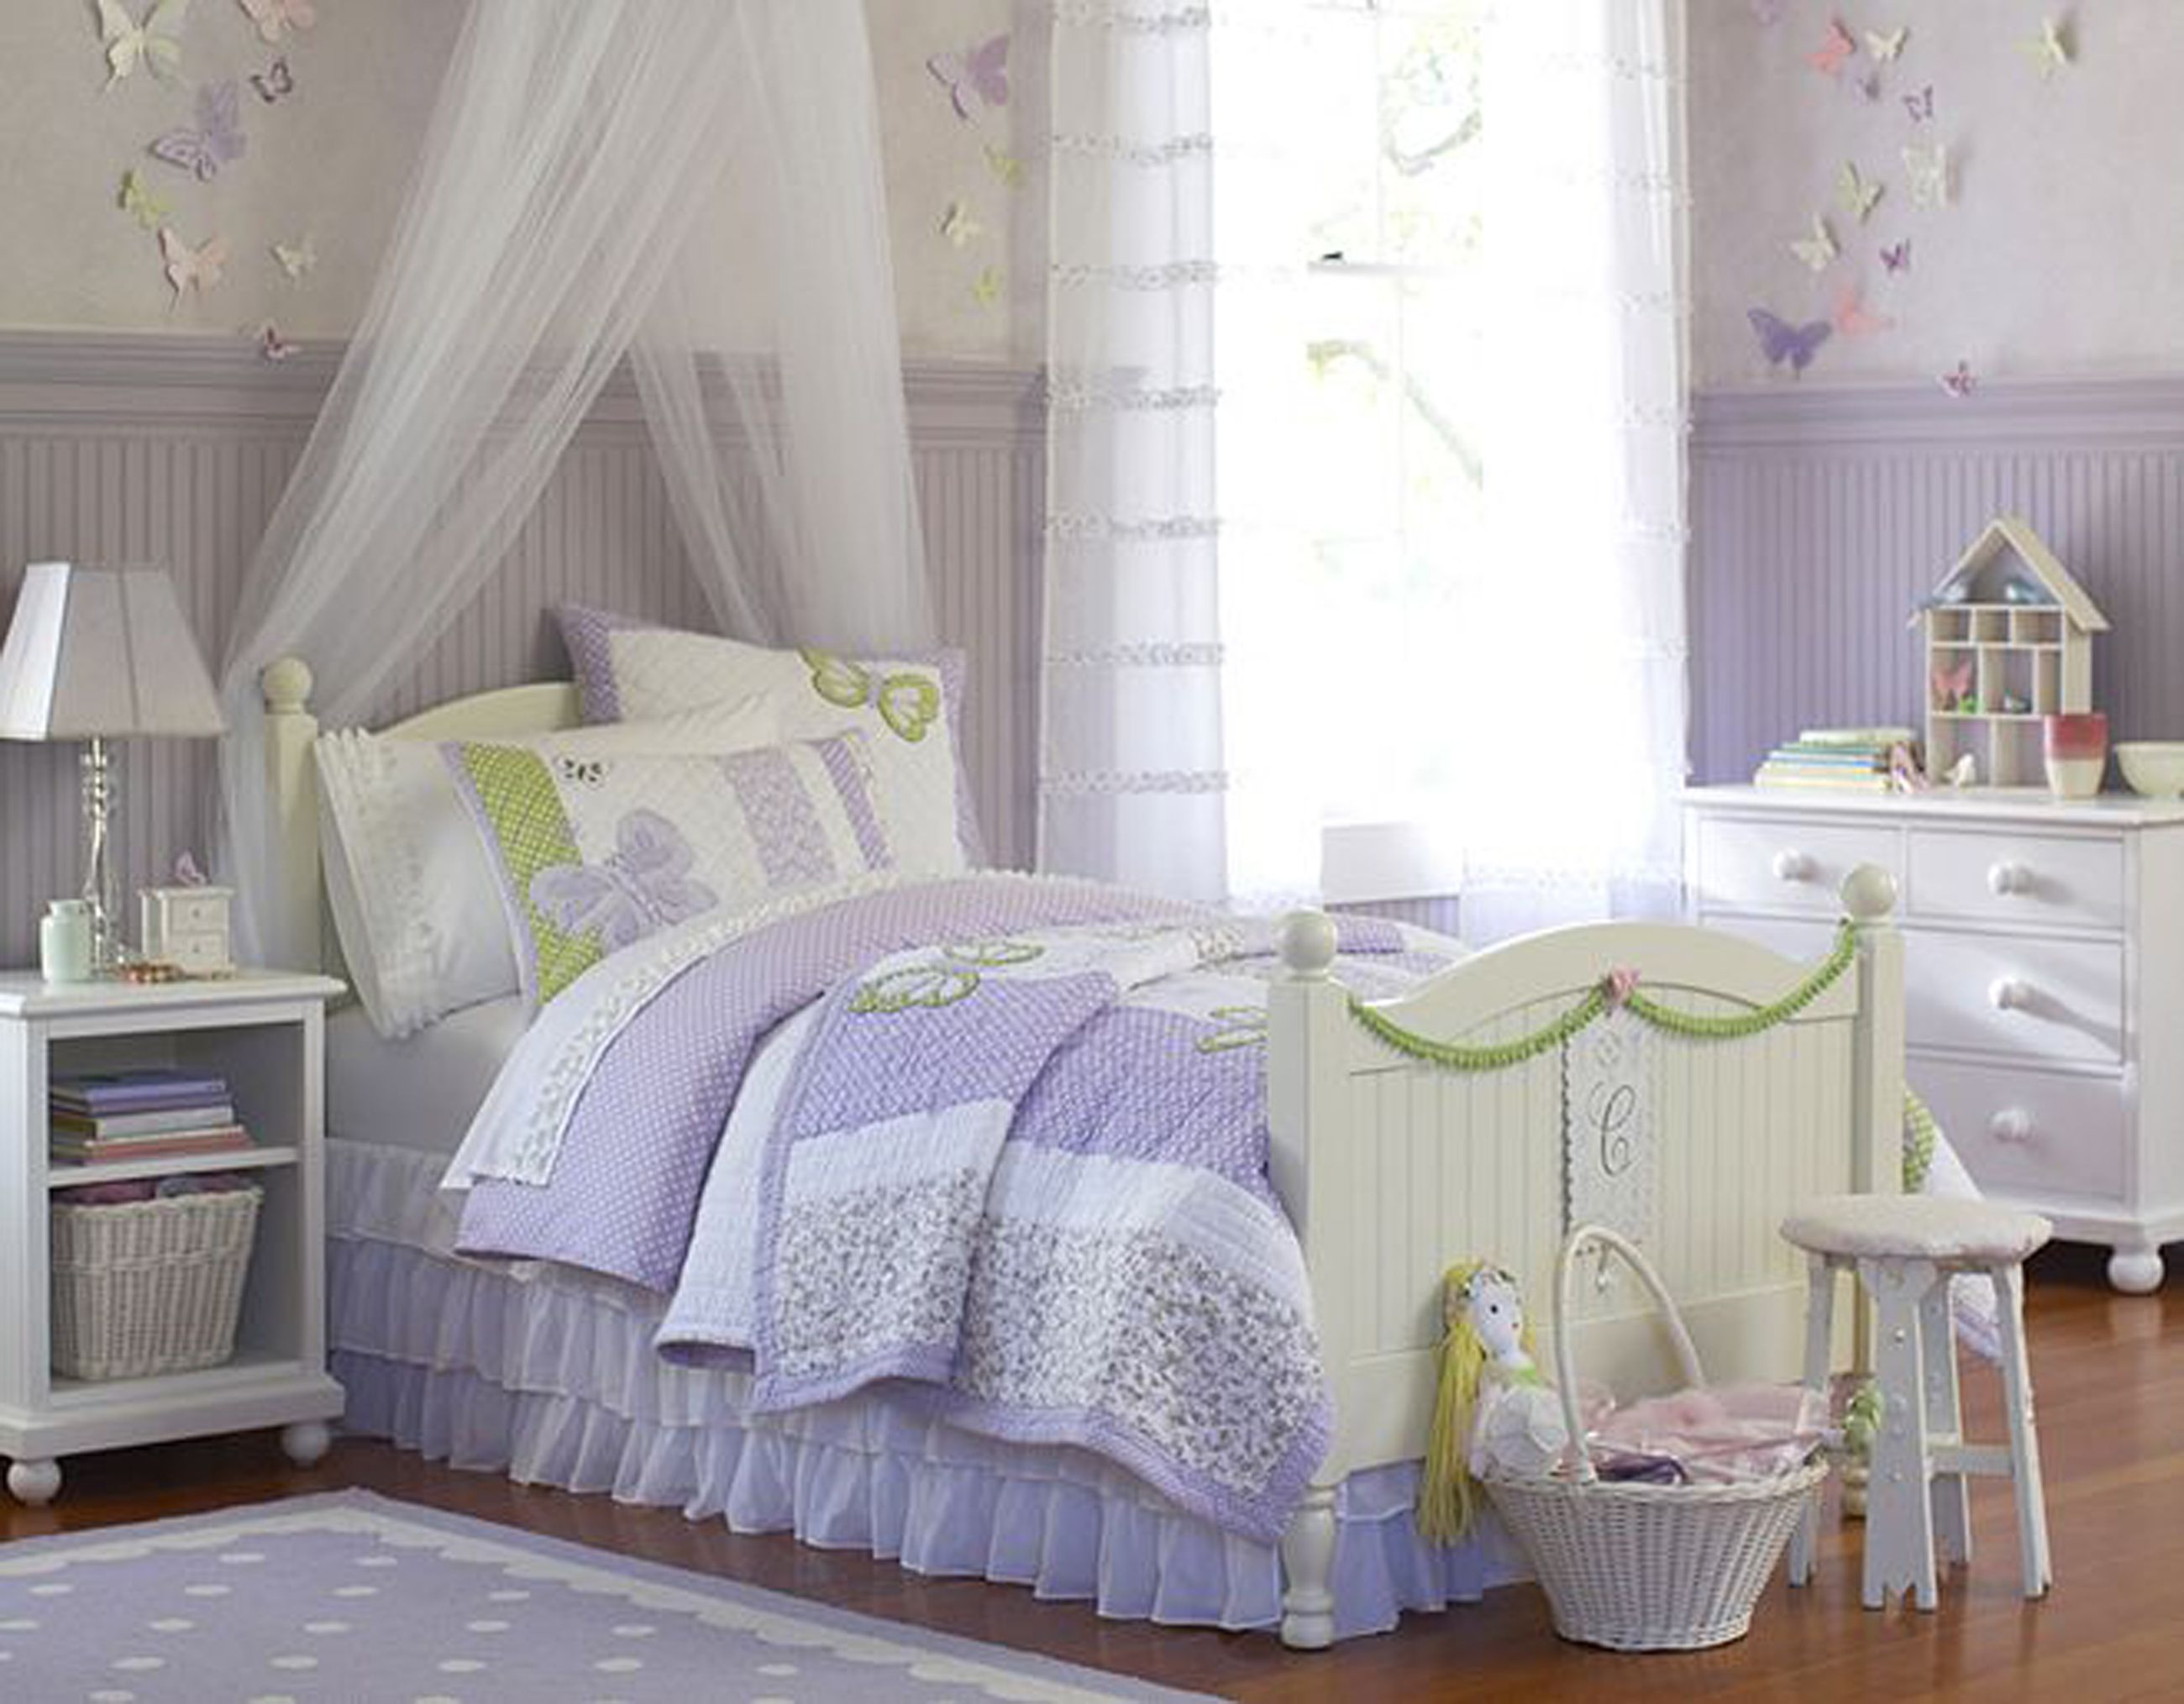 Lavender Bedroom Adorable Purple Bedroom Design With Wooden Floor And White